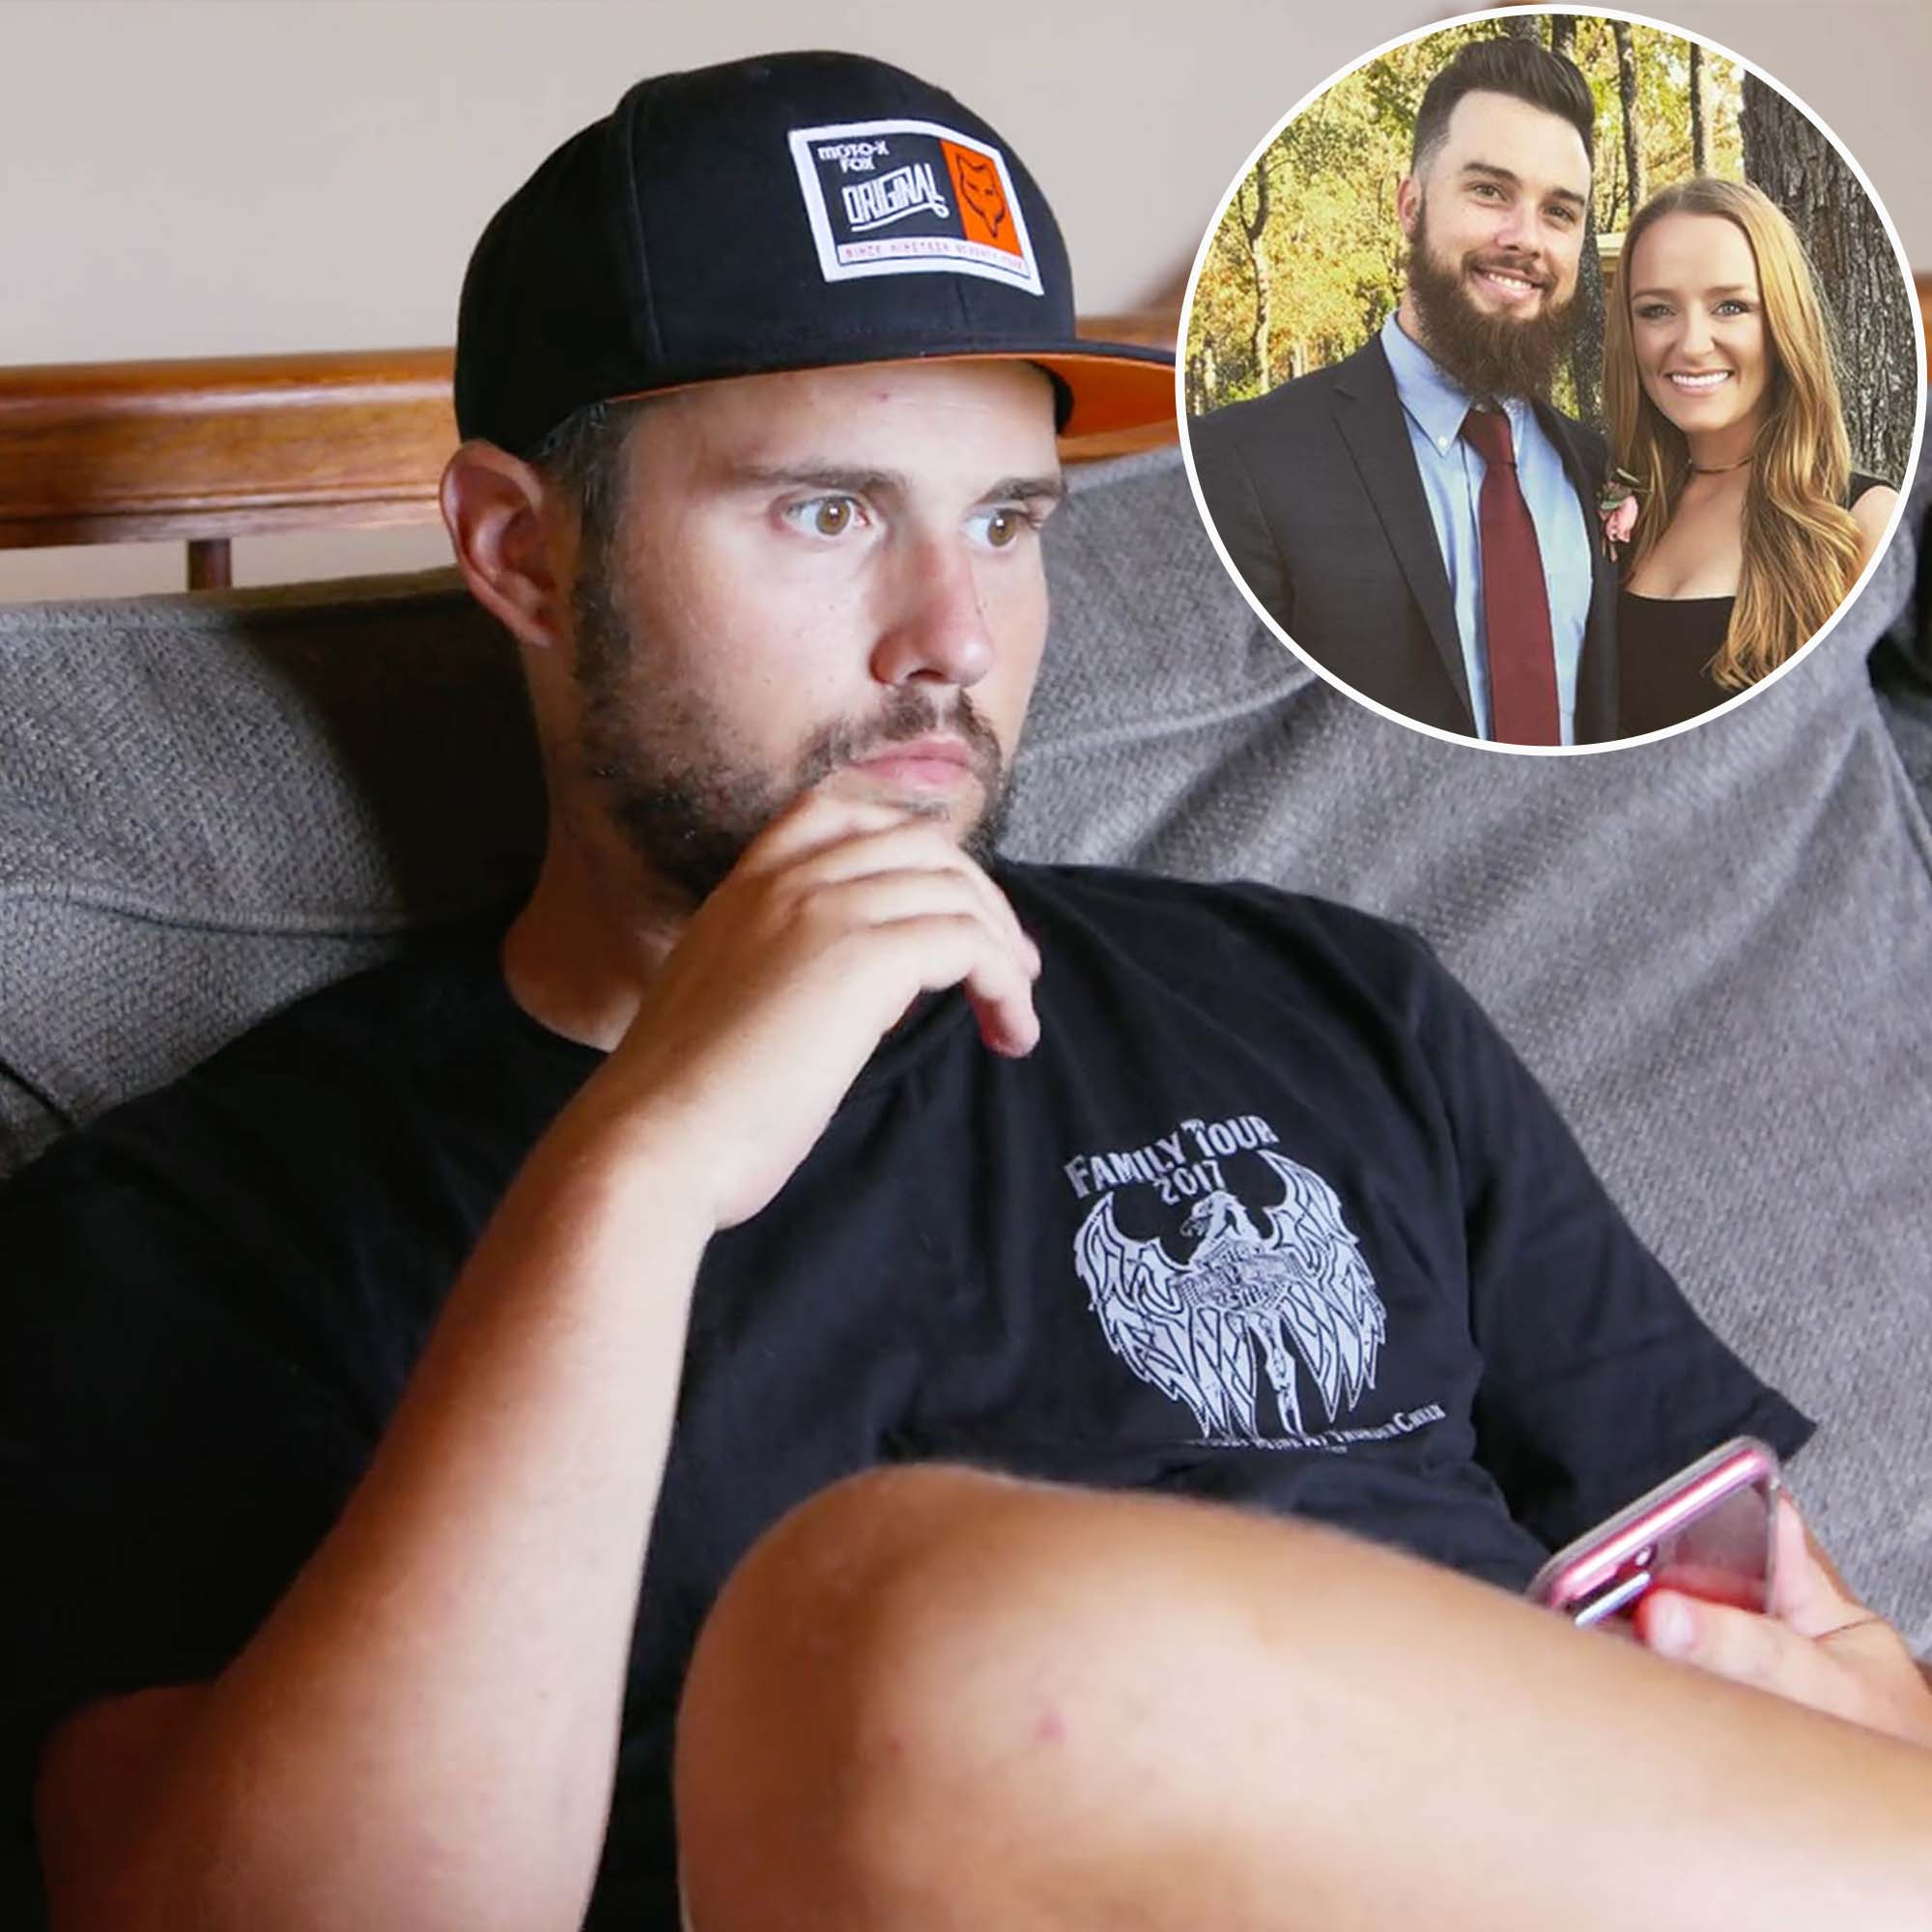 Ryan Edwards Fires Back Maci Bookouts Husband Taylor After Explosive TMOG Reunion He's Punk